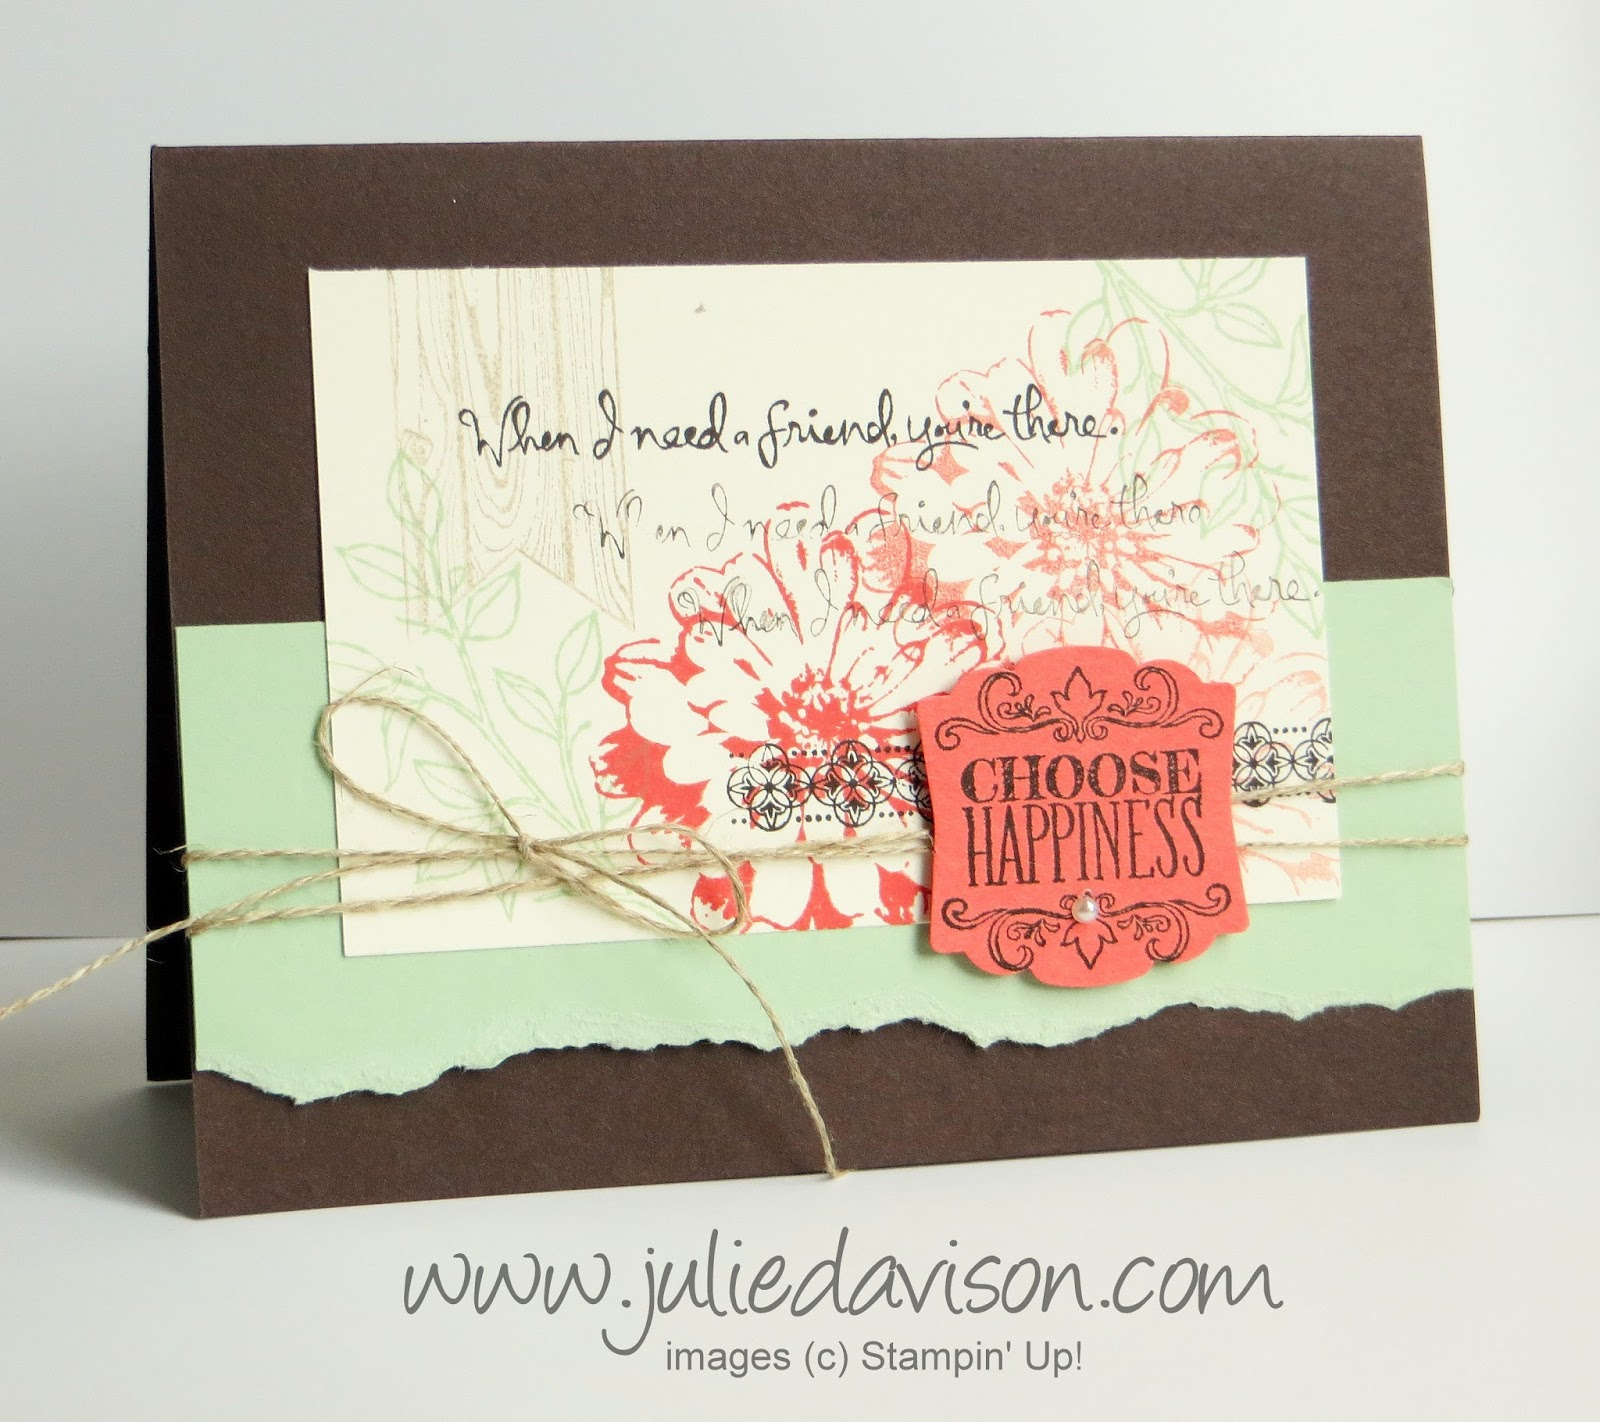 Stampin' Up! Choose Happiness Collage Card